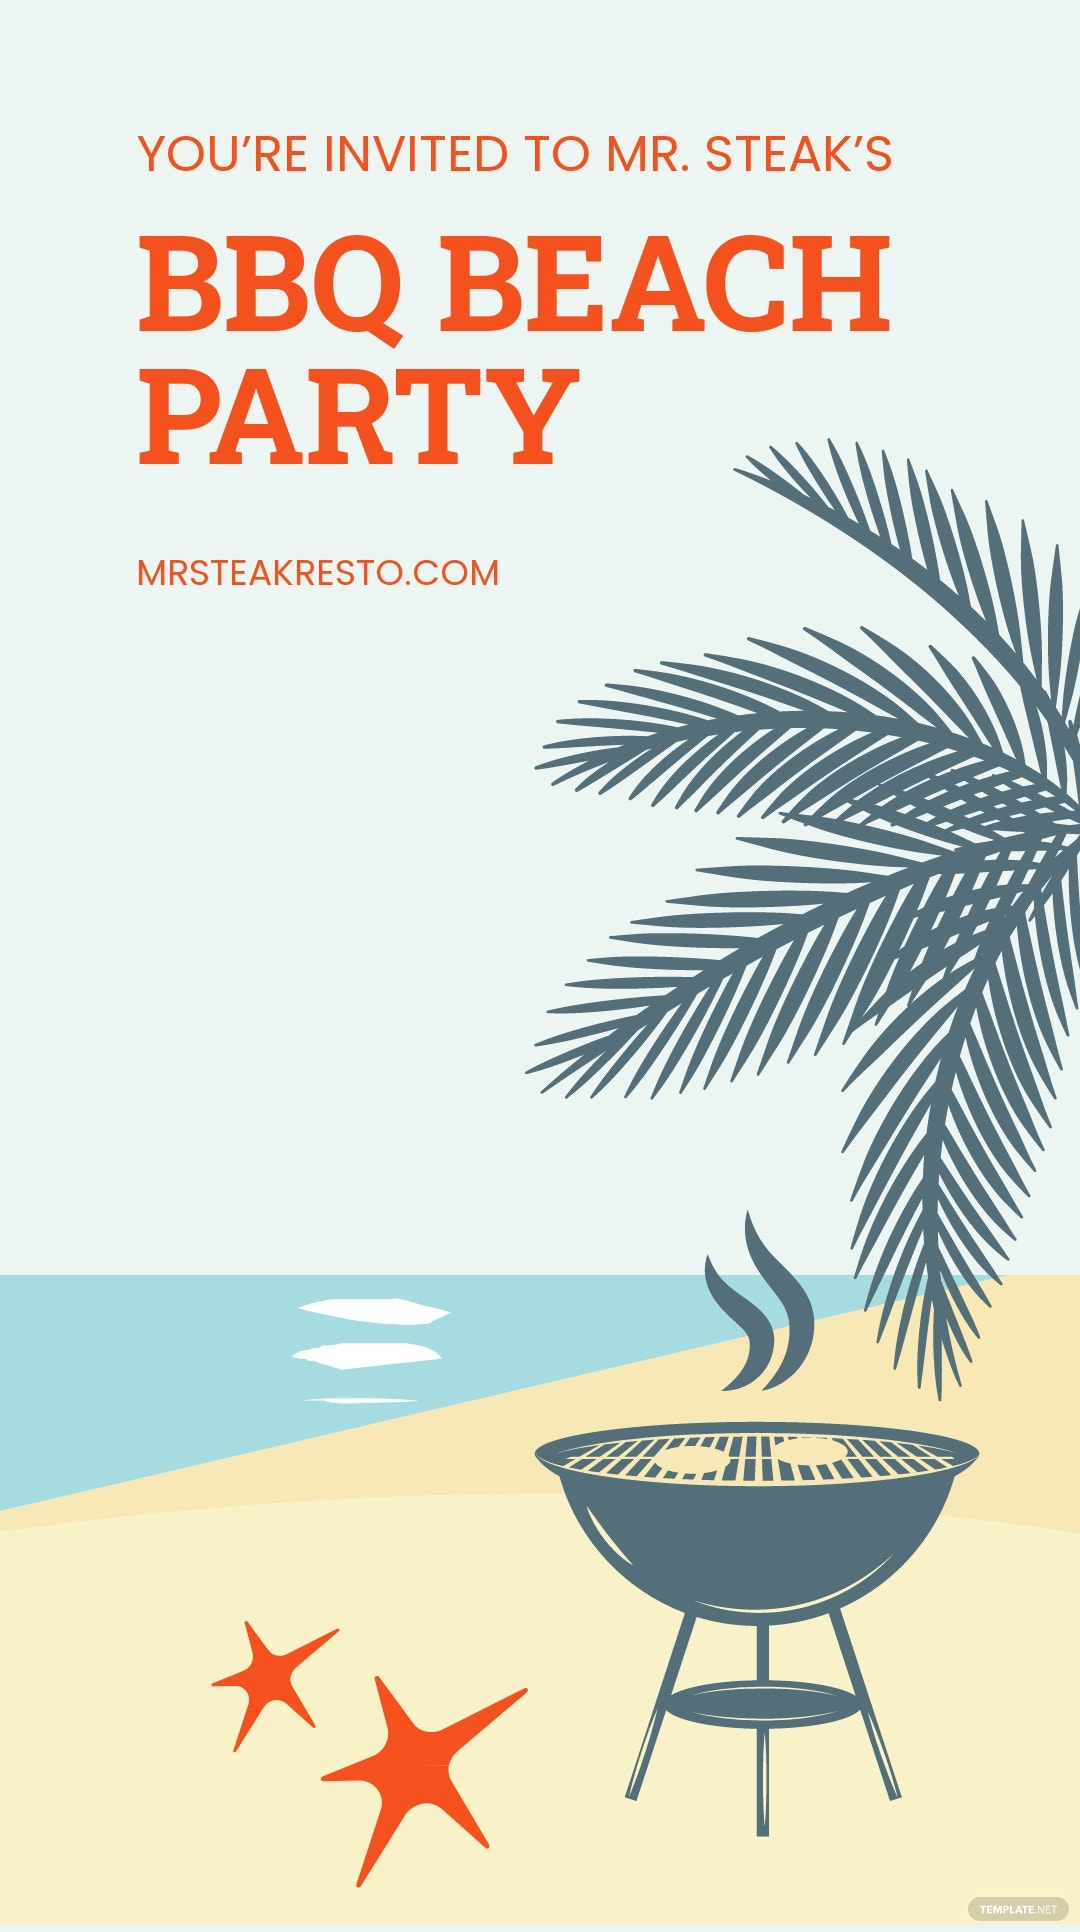 Bbq Beach Party Instagram Story Template.jpe